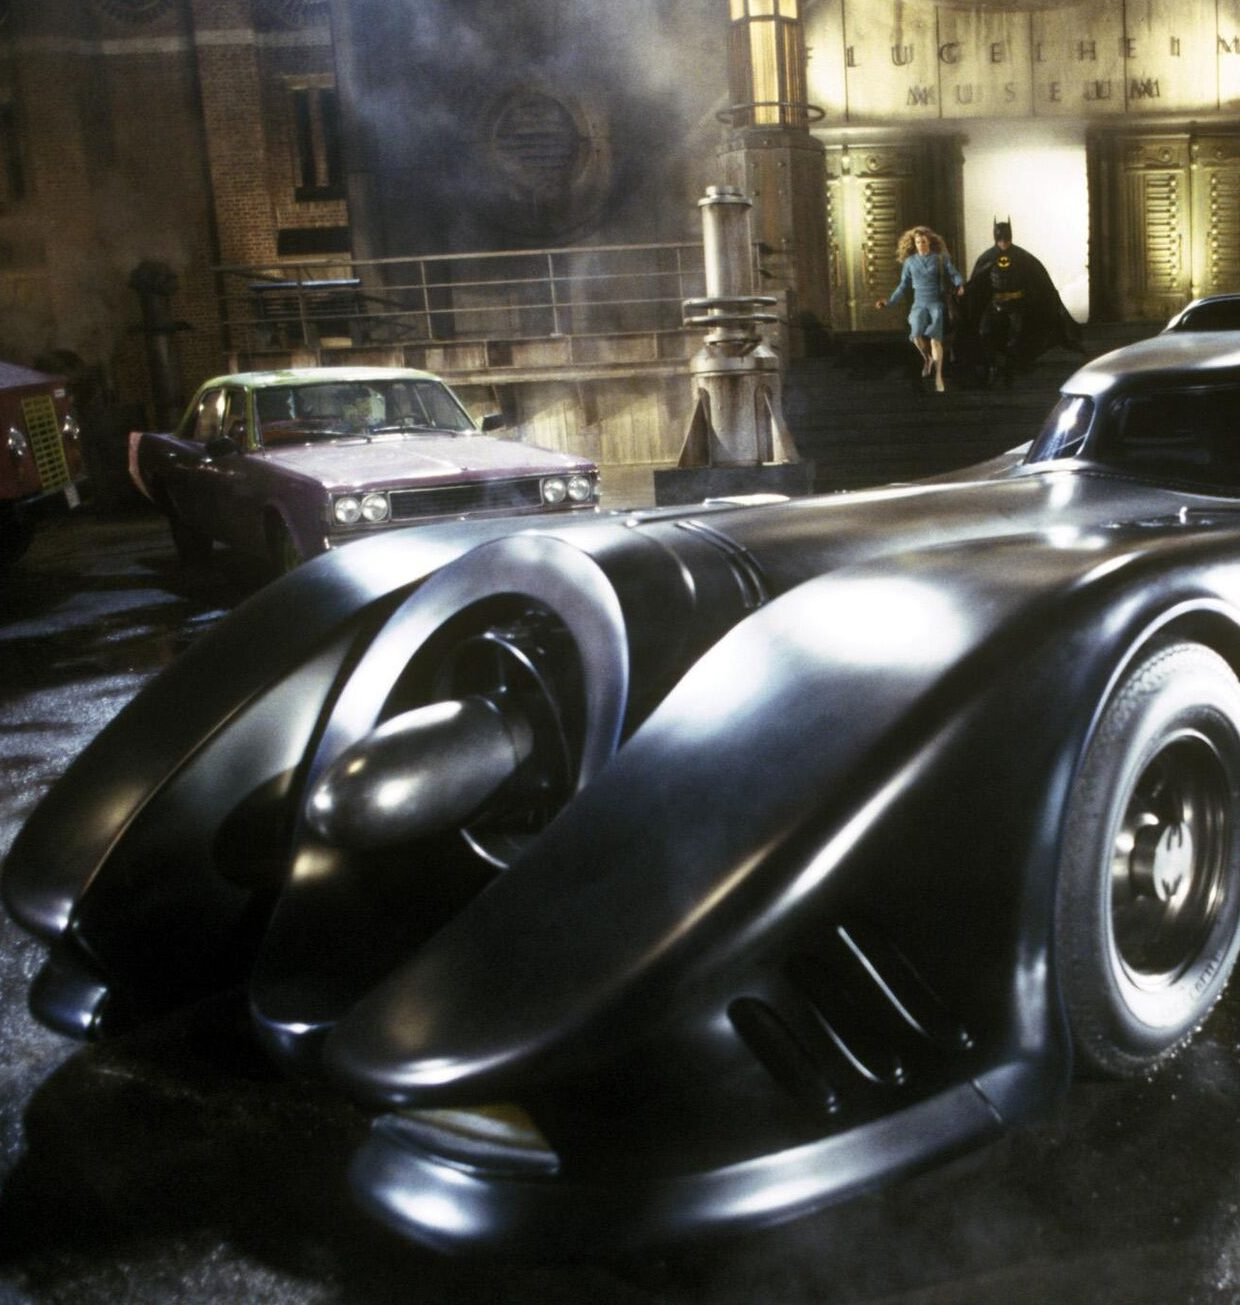 batmobile1989 e1582104612931 10 Vehicles From 80s Movies And TV Shows You Wish You Owned